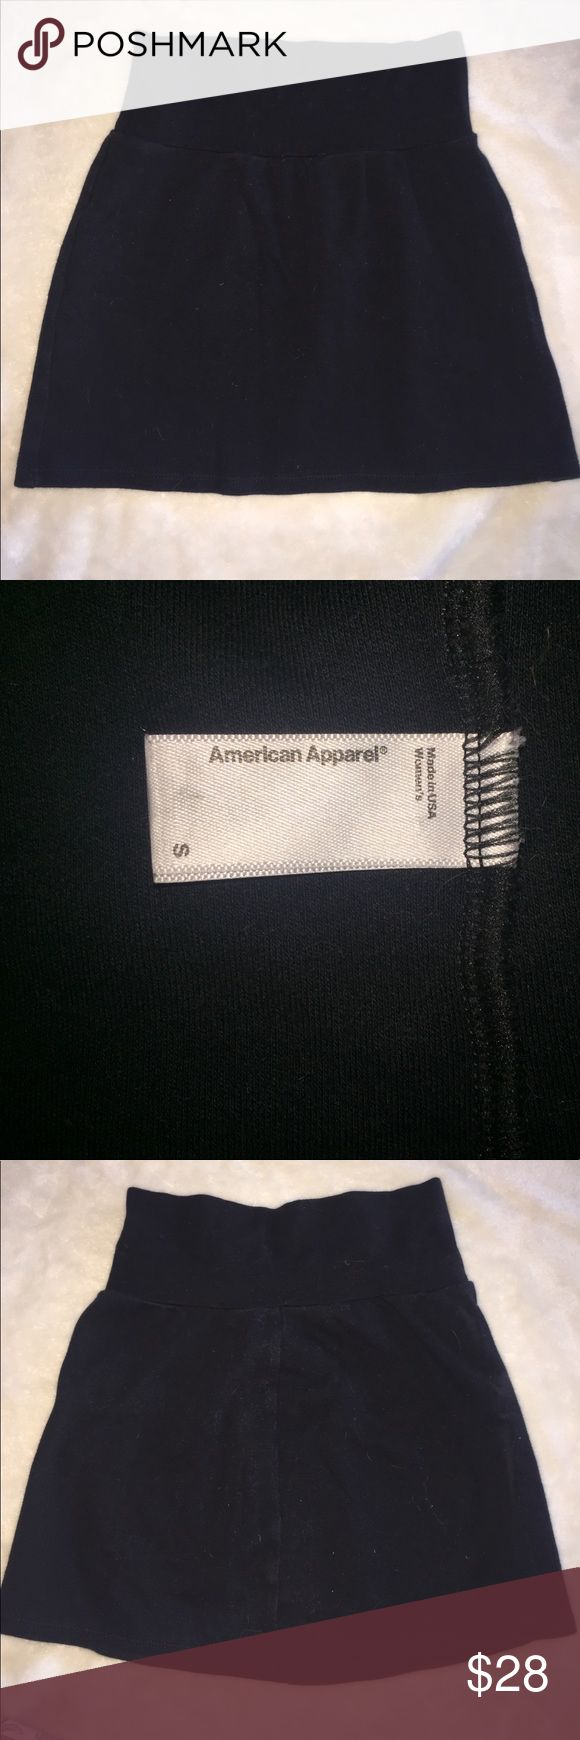 American Apparel tight black skirt American Apparel tight black skirt with stretch! Super super cute!! And comfy, a double win! Seams on sides. You'll look great out casually in this or dressing it up for a night out. American Apparel Skirts Mini